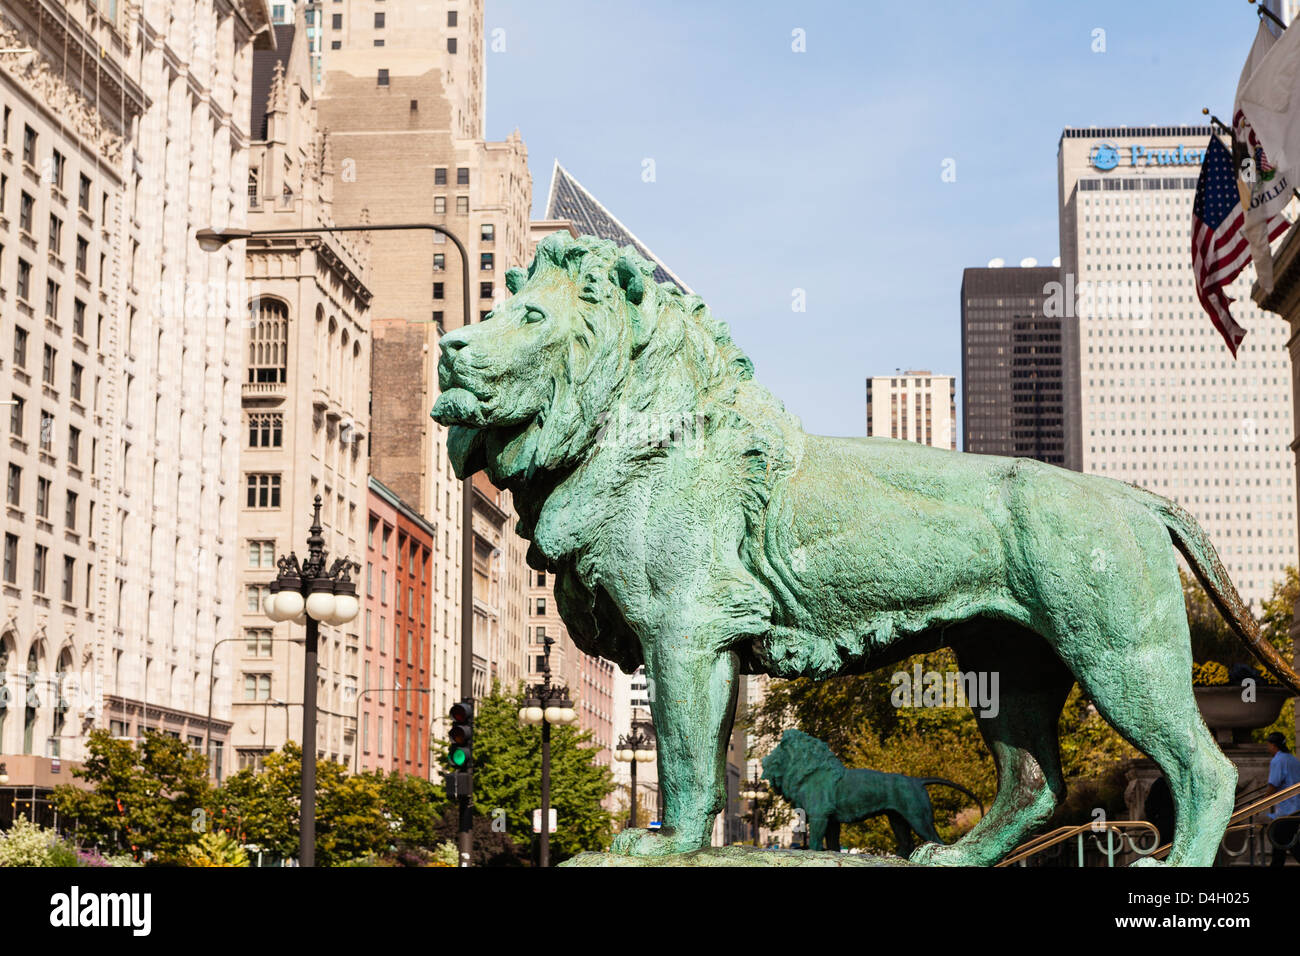 One of the two iconic bronze lion statues outside the Art Institute of Chicago, Chicago, Illinois, USA - Stock Image